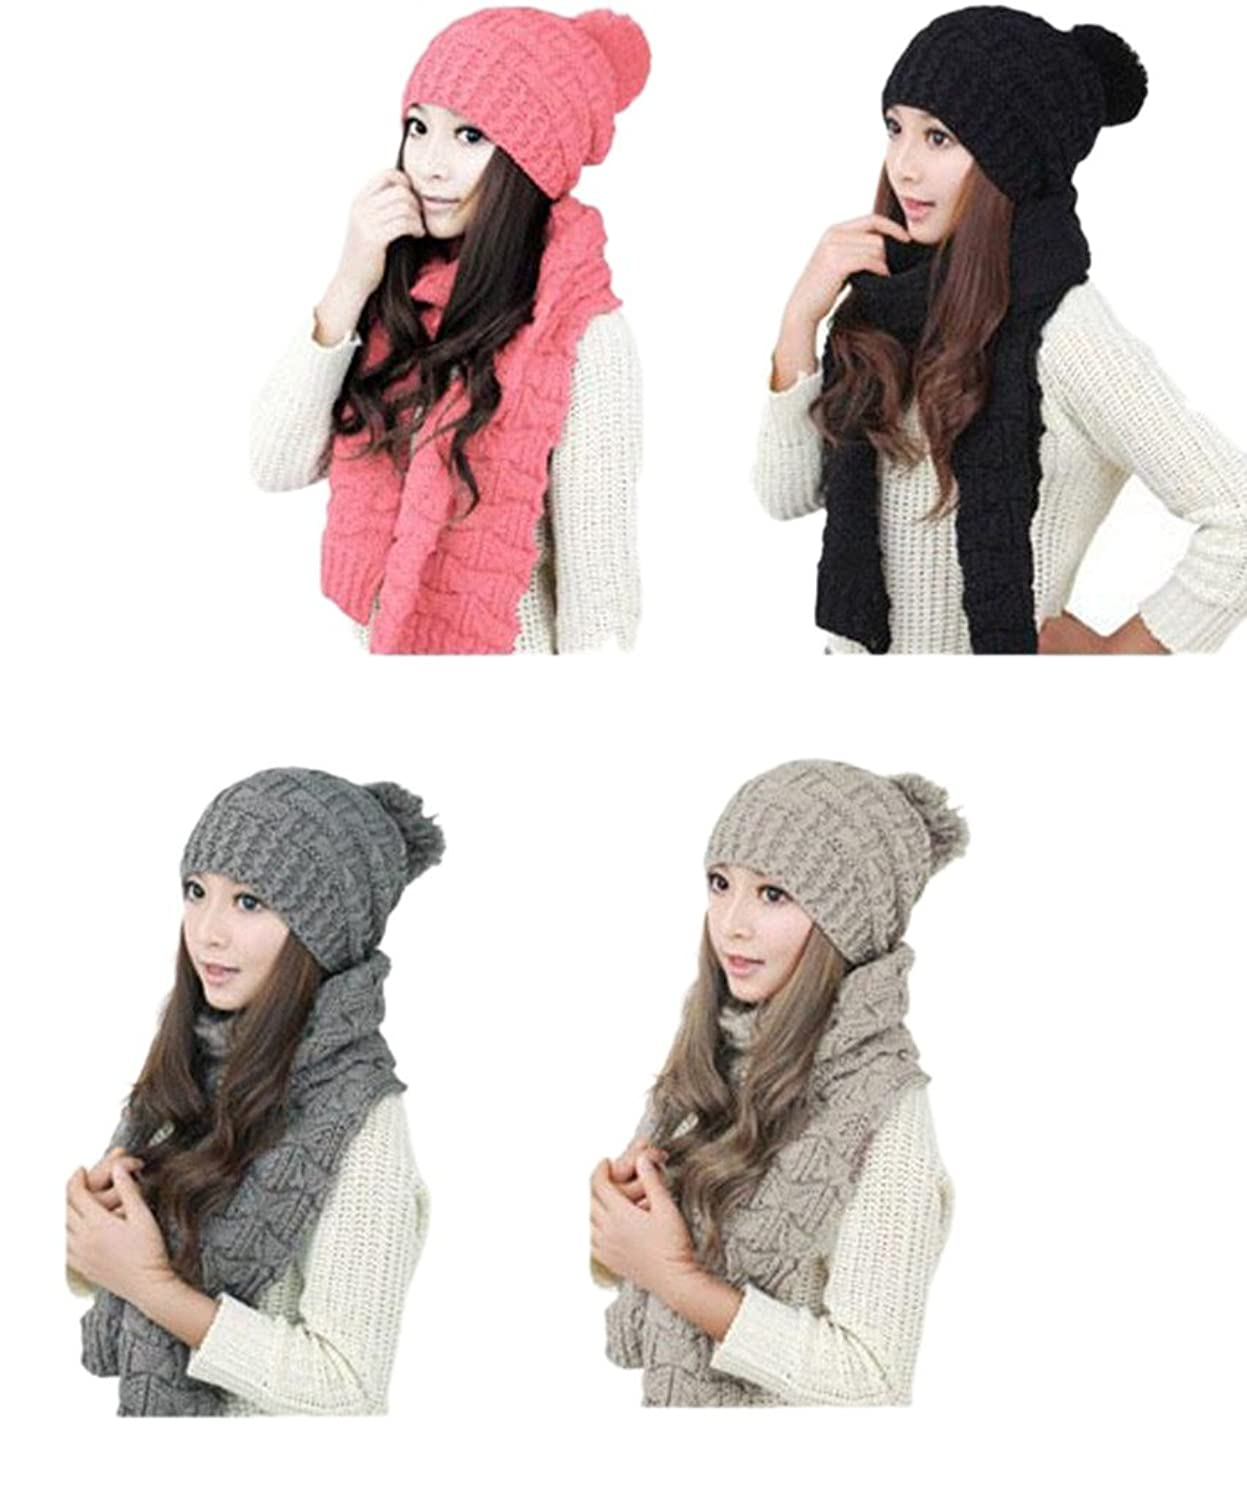 I'MQueen Women's Girls Fashion Winter Warm Skull Cap Knitted Hat and Scarf Set